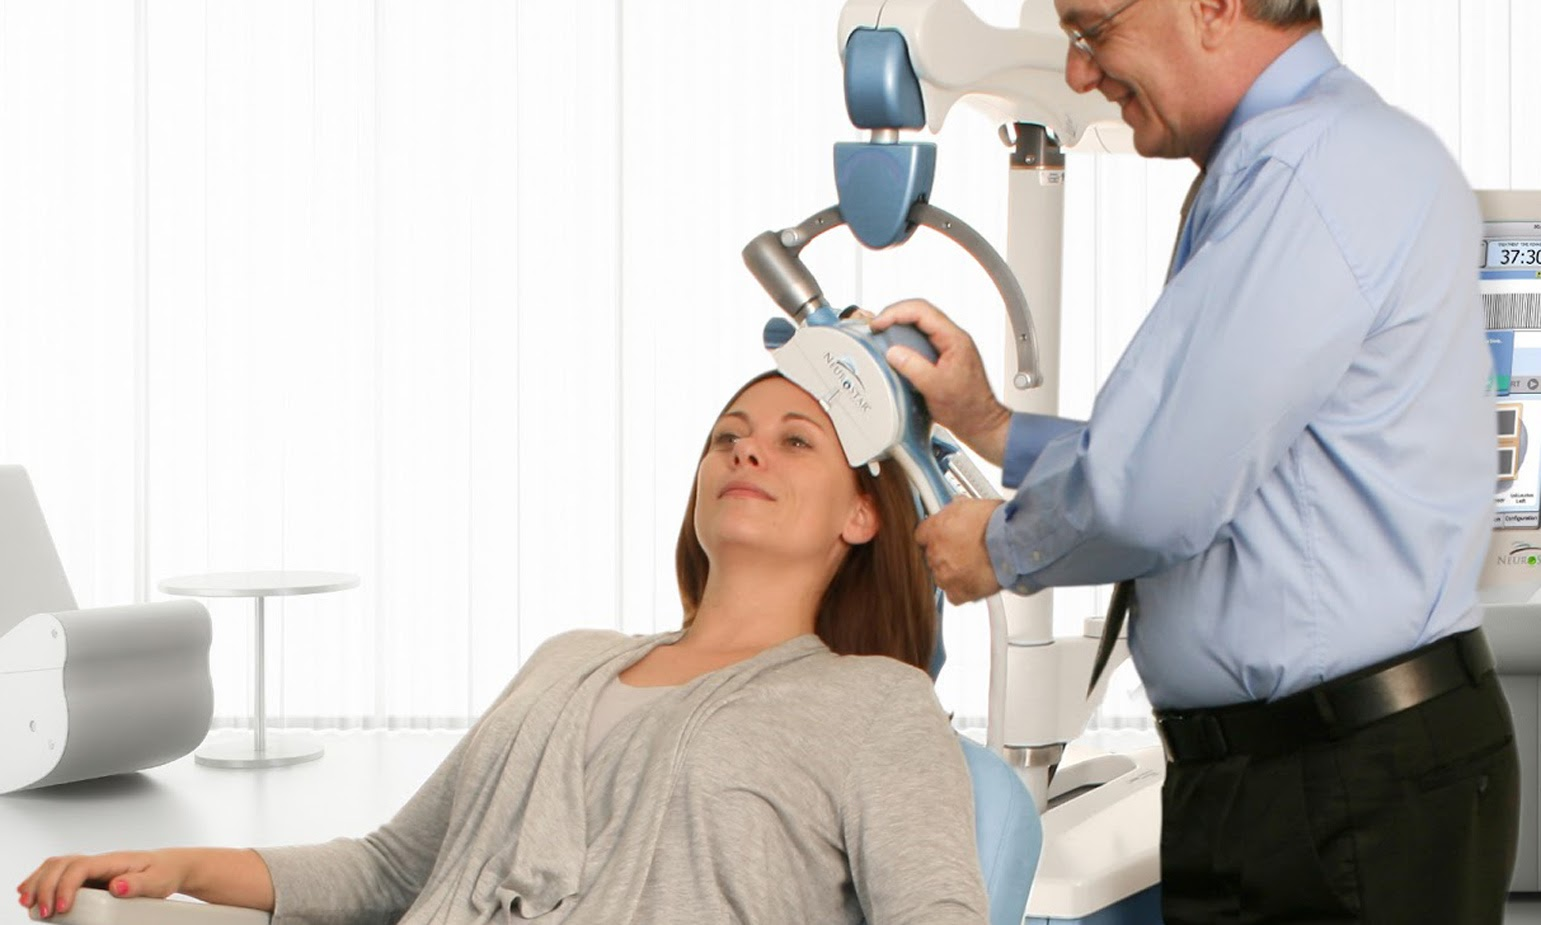 A woman sitting in a doctor's office receives TMS therapy.